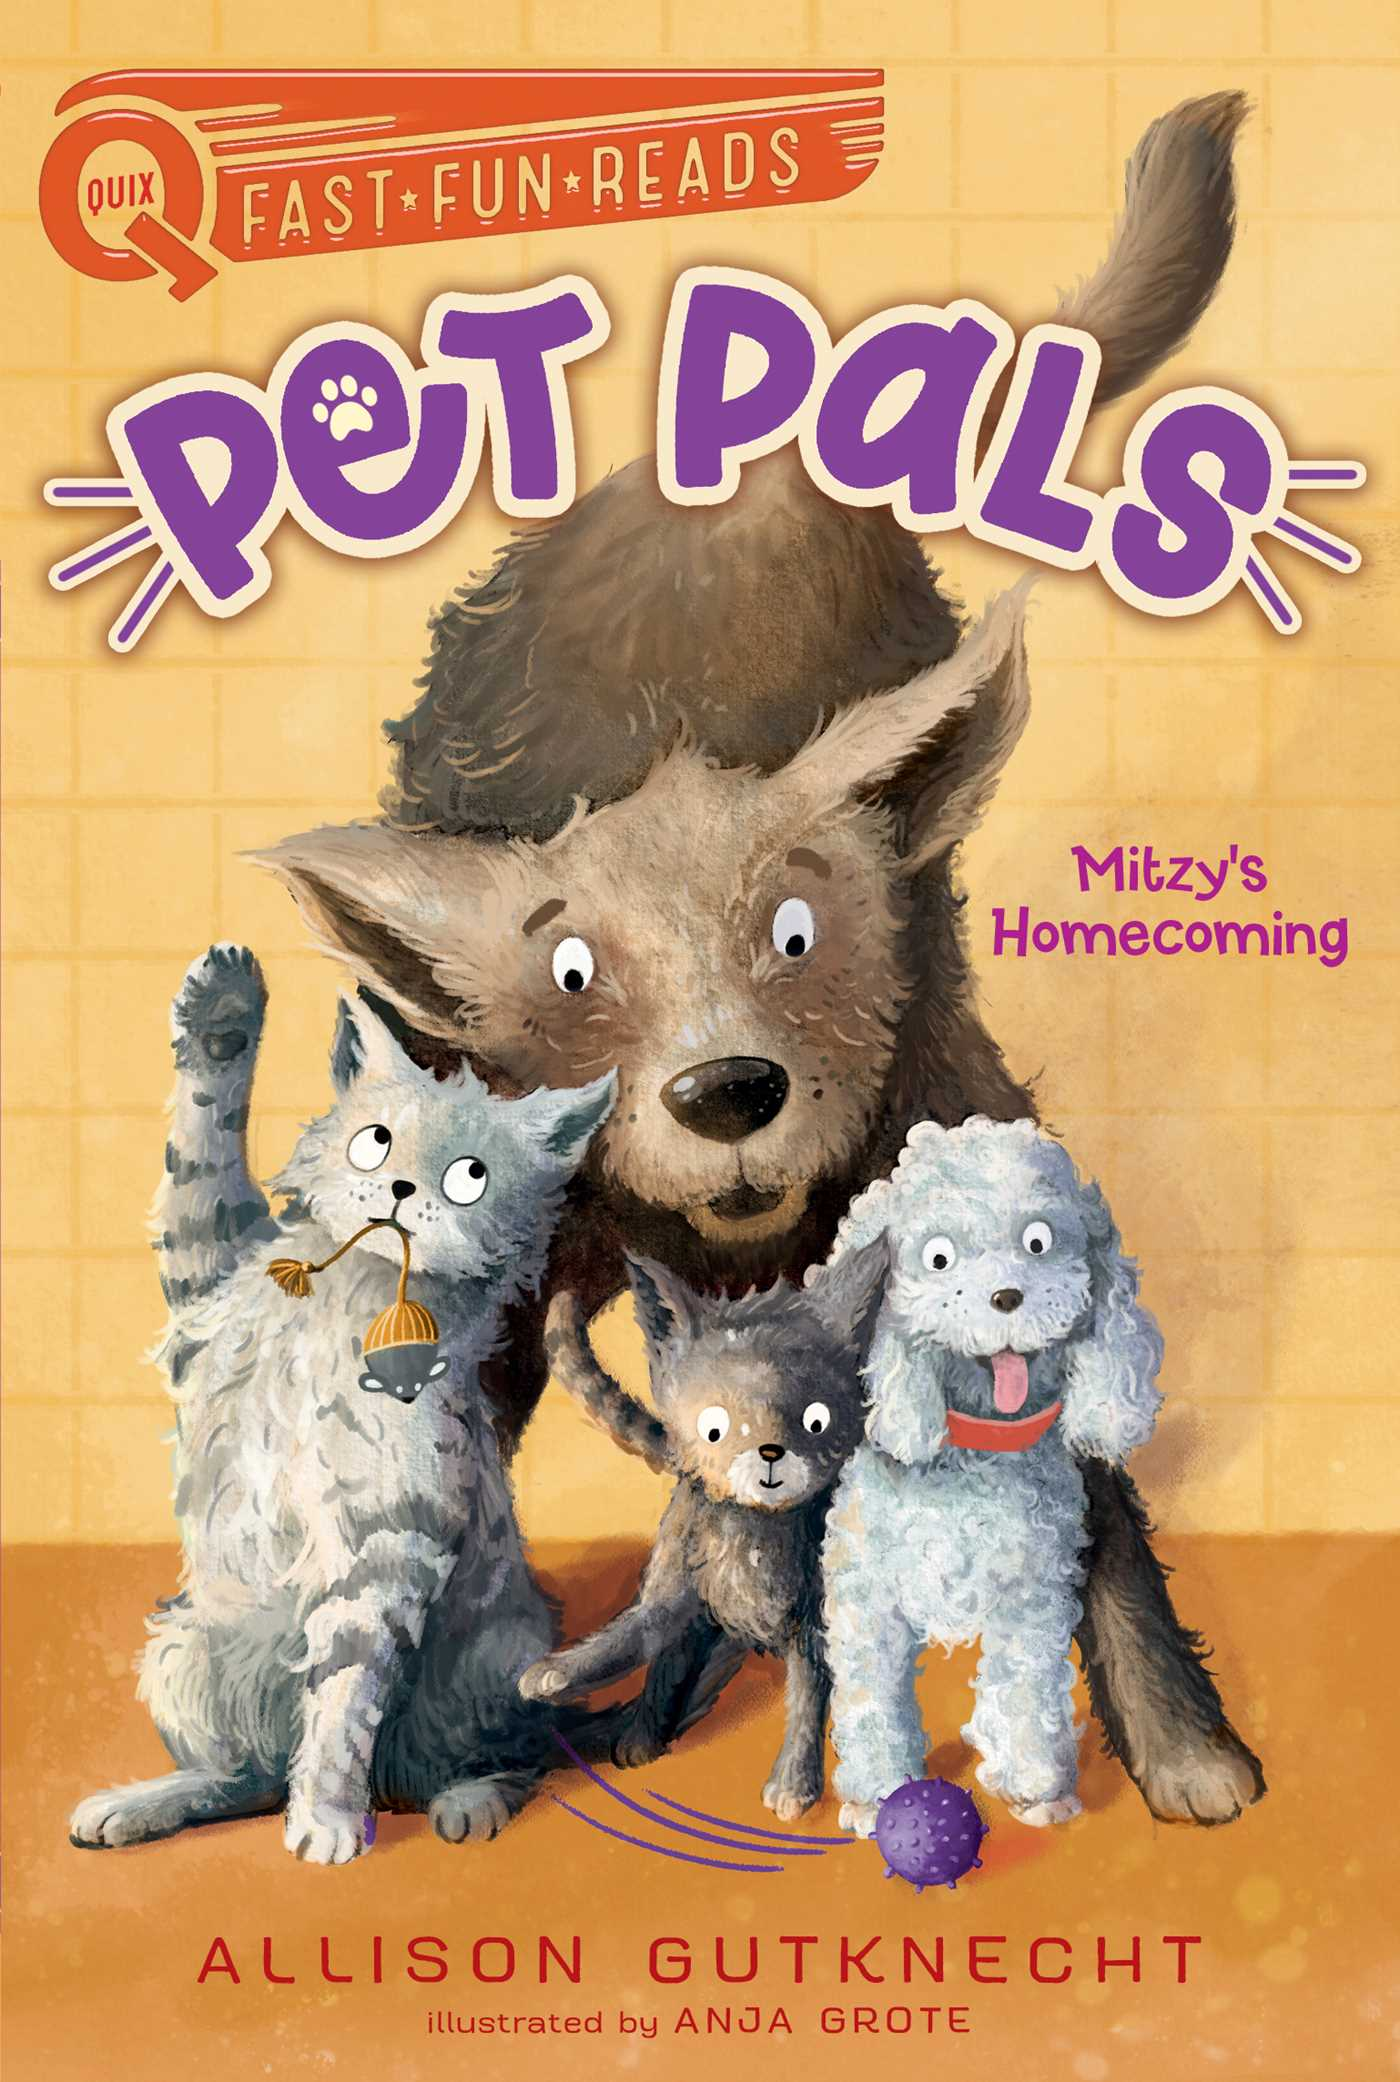 Mitzy's Homecoming by Allison Gutknecht